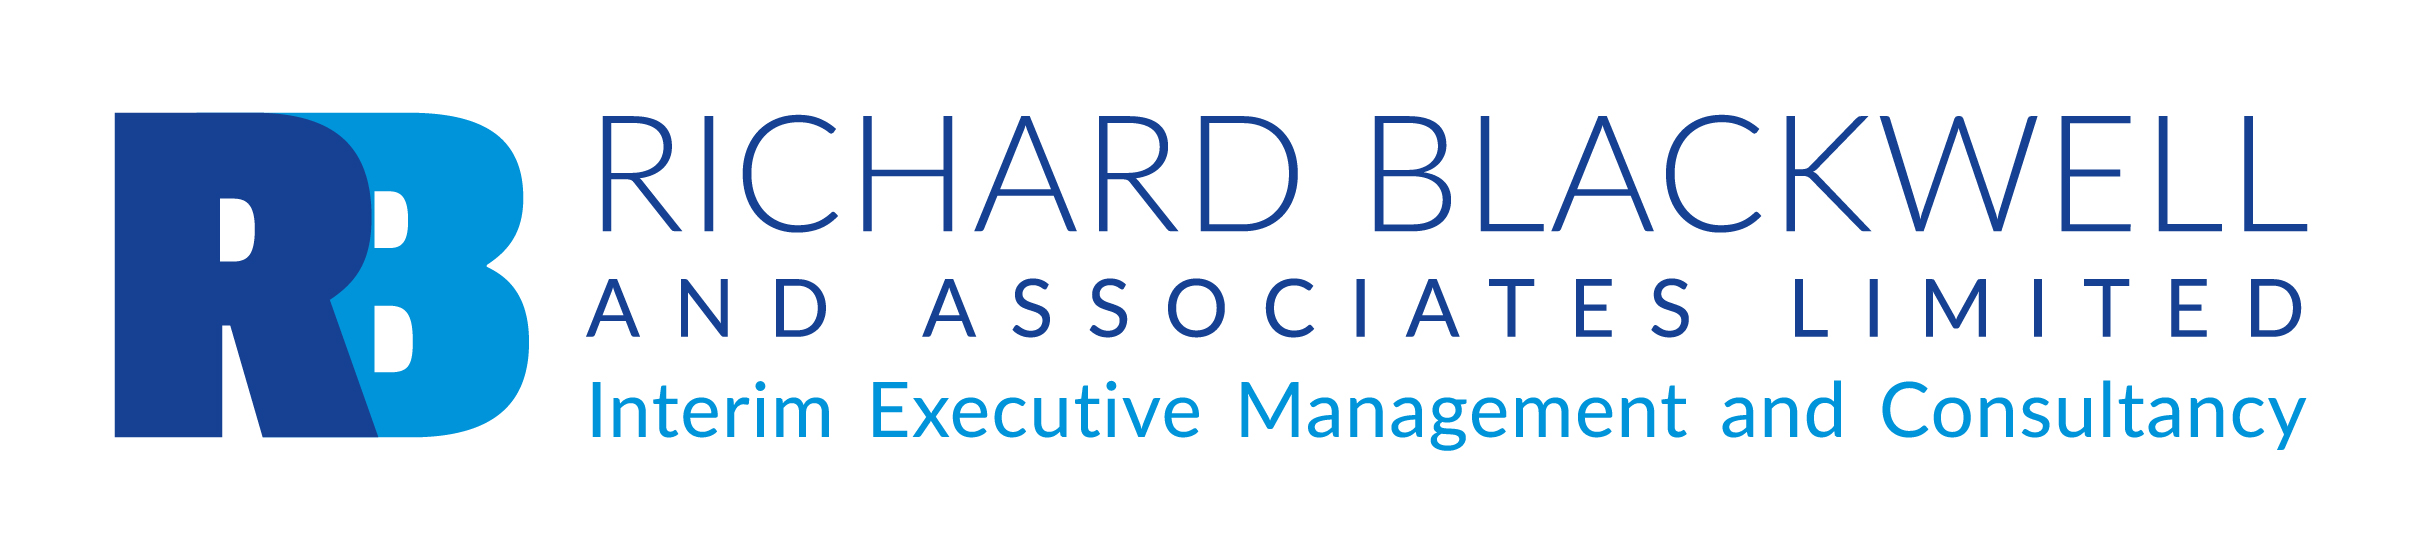 Richard Blackwell and Associates Limited